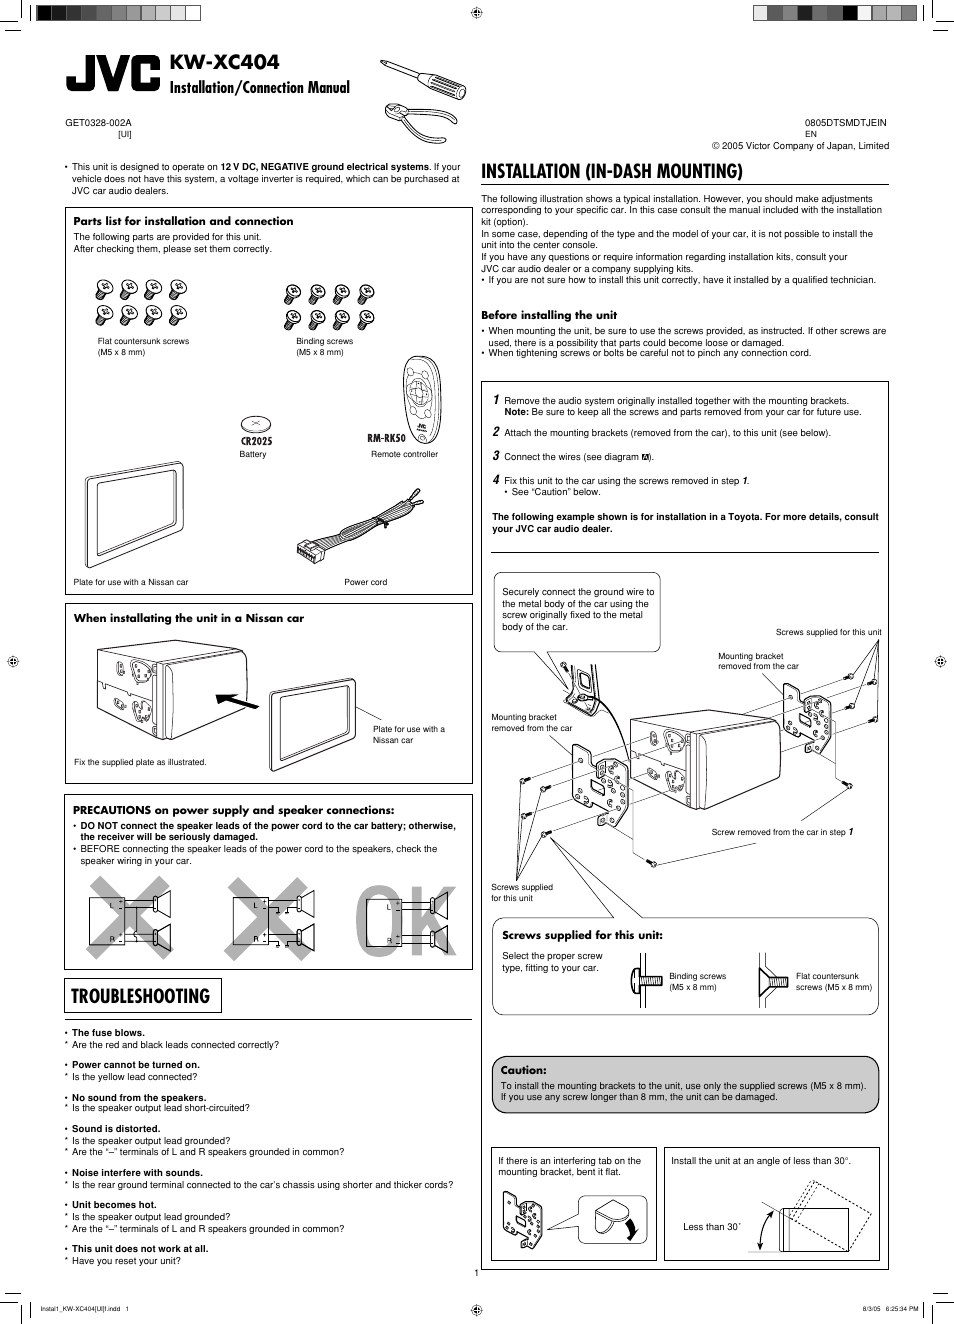 Kw-xc404 installation/connection manual, Installation (in-dash mounting),